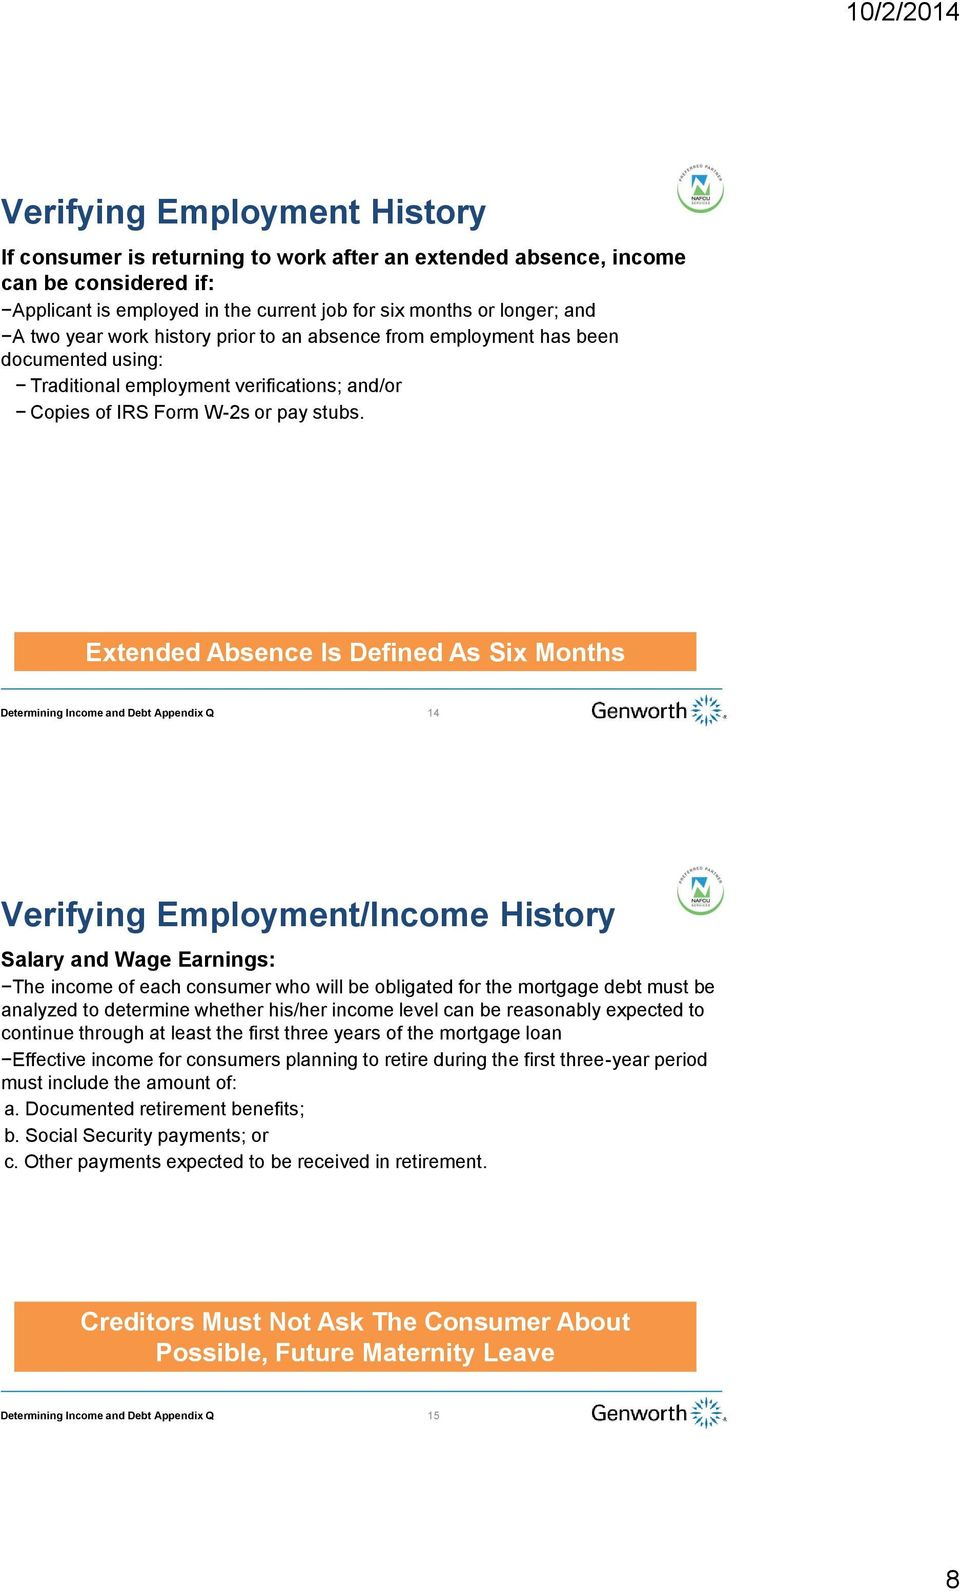 Extended Absence Is Defined As Six Months 14 Verifying Employment/Income History Salary and Wage Earnings: The income of each consumer who will be obligated for the mortgage debt must be analyzed to